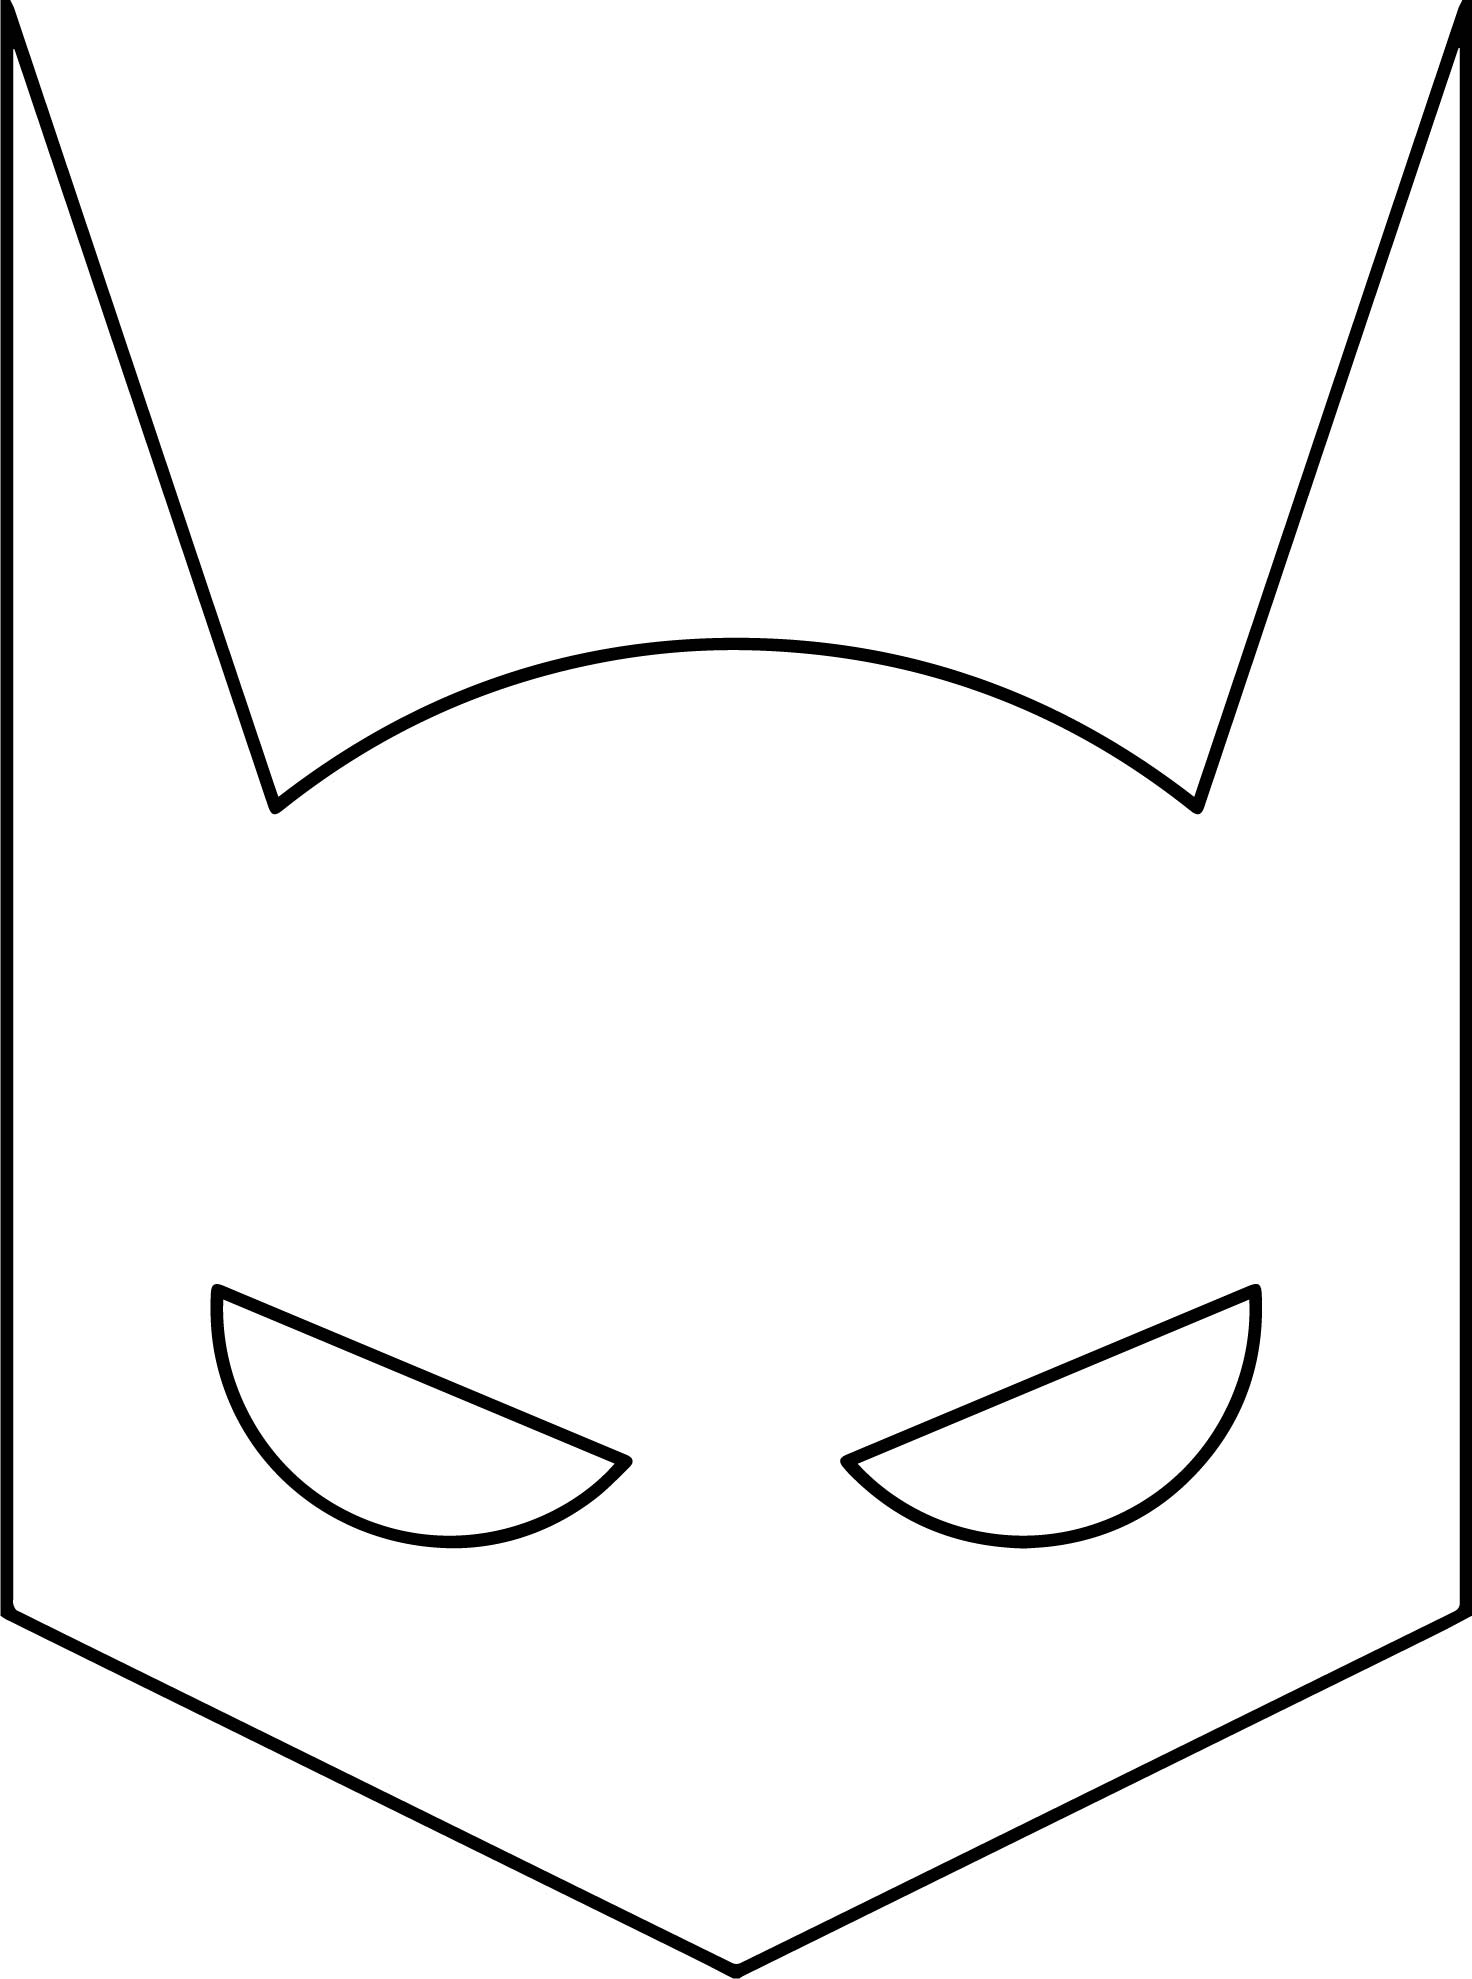 Superheroes Super Hero Batman Mask Coloring Page  Wecoloringpage